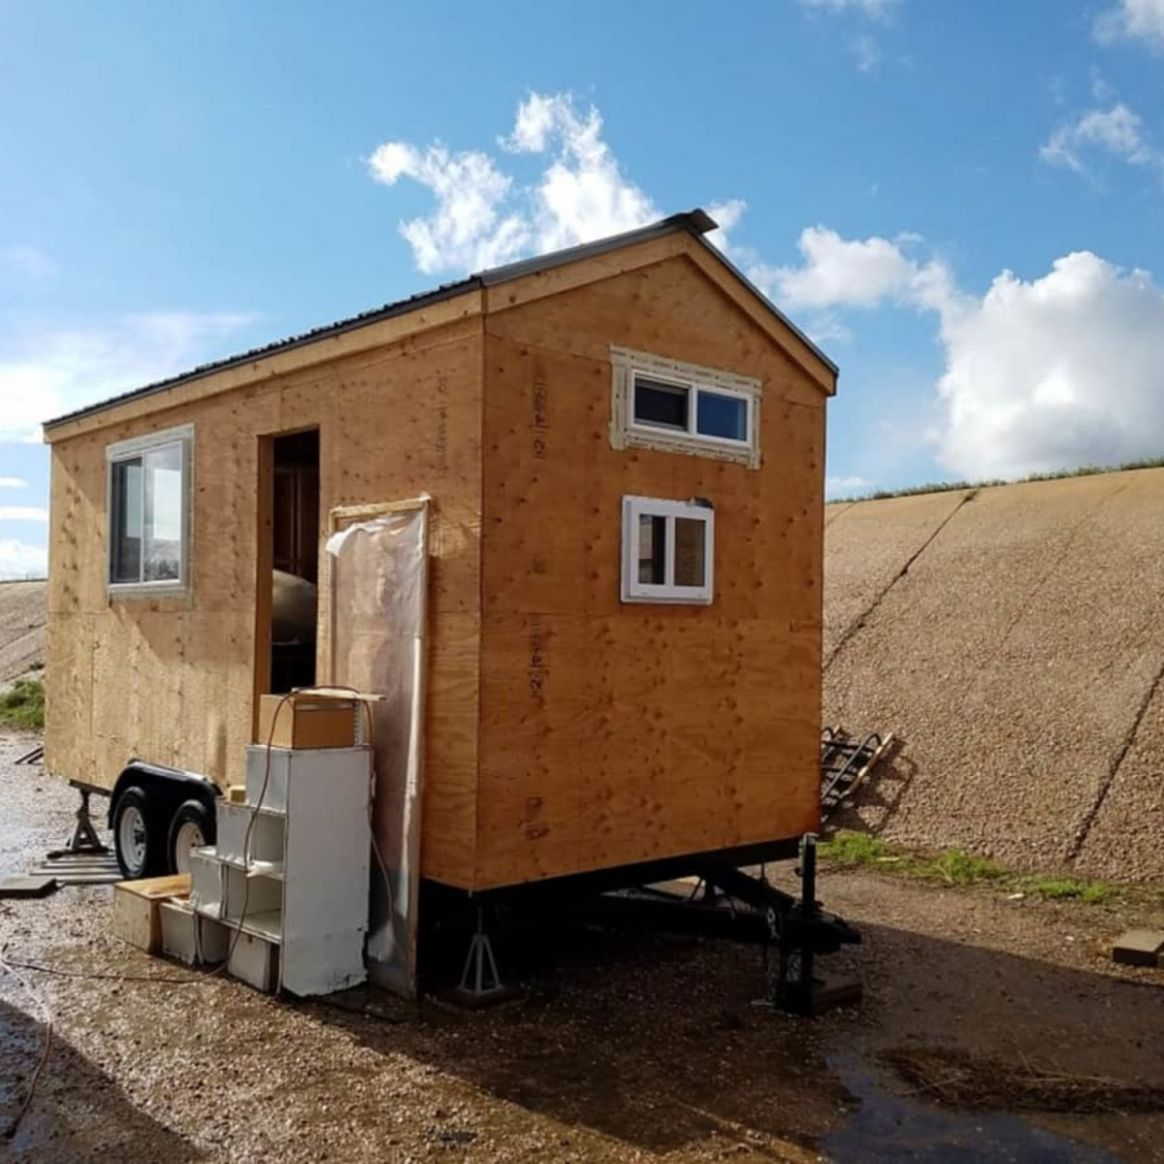 11' Tiny House Shell (Final Price Drop!) - Tiny House Shell for Sale in  Boulder, Colorado - Tiny House Listings